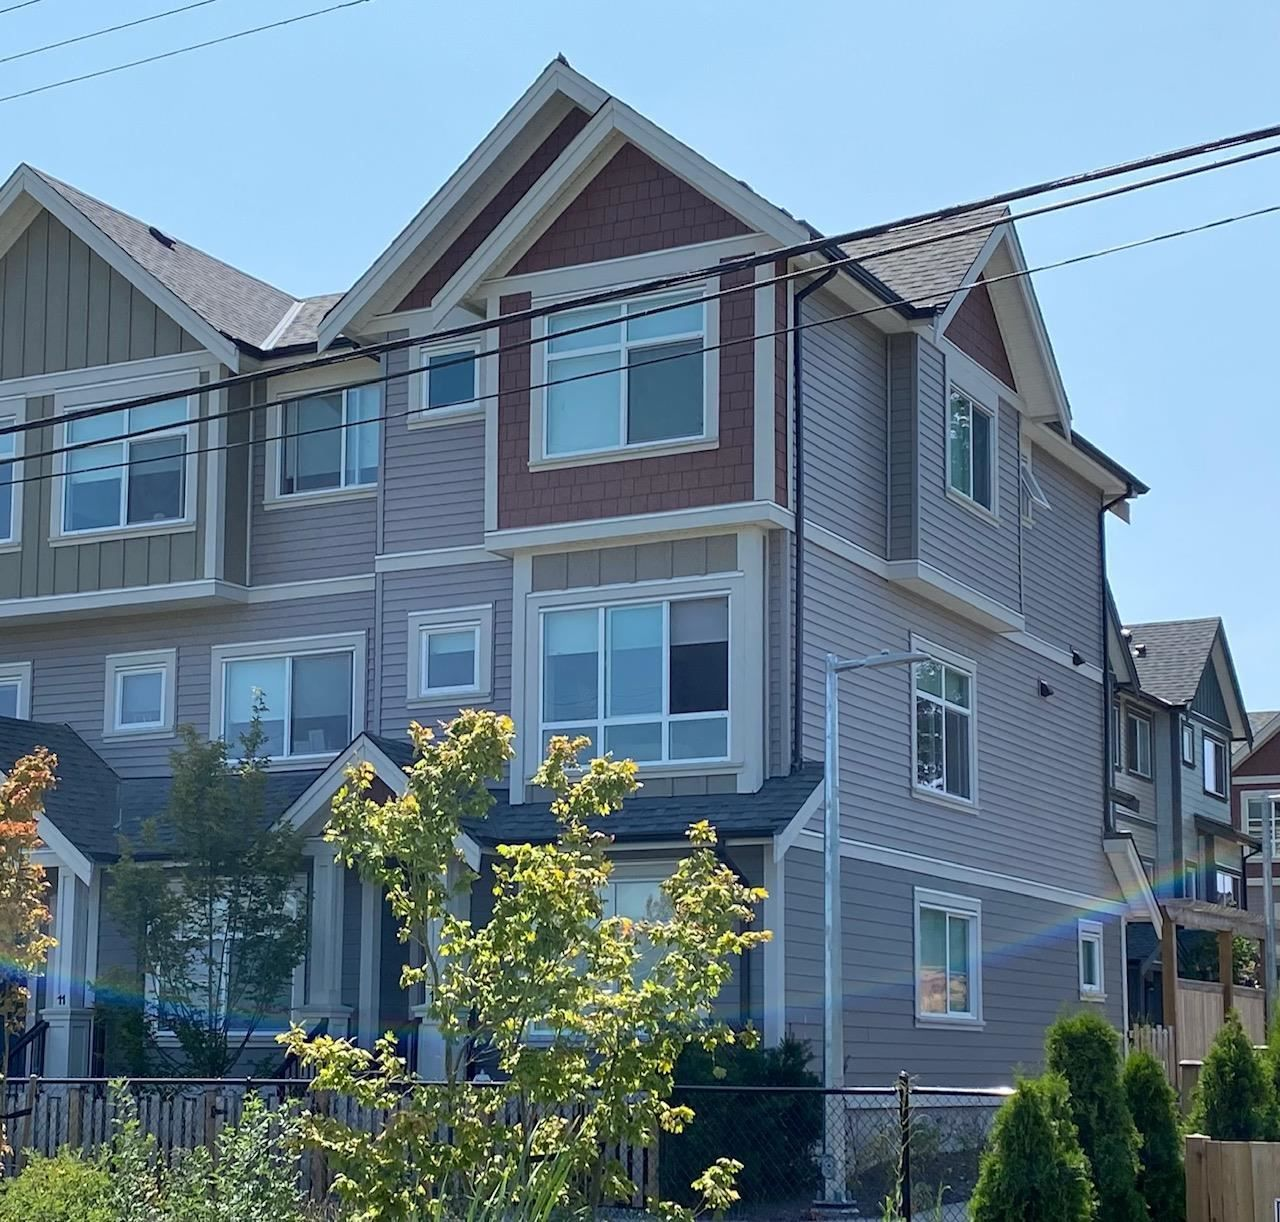 """Main Photo: 12 22600 GILLEY Road in Richmond: Hamilton RI Townhouse for sale in """"Parc Gilley"""" : MLS®# R2604347"""